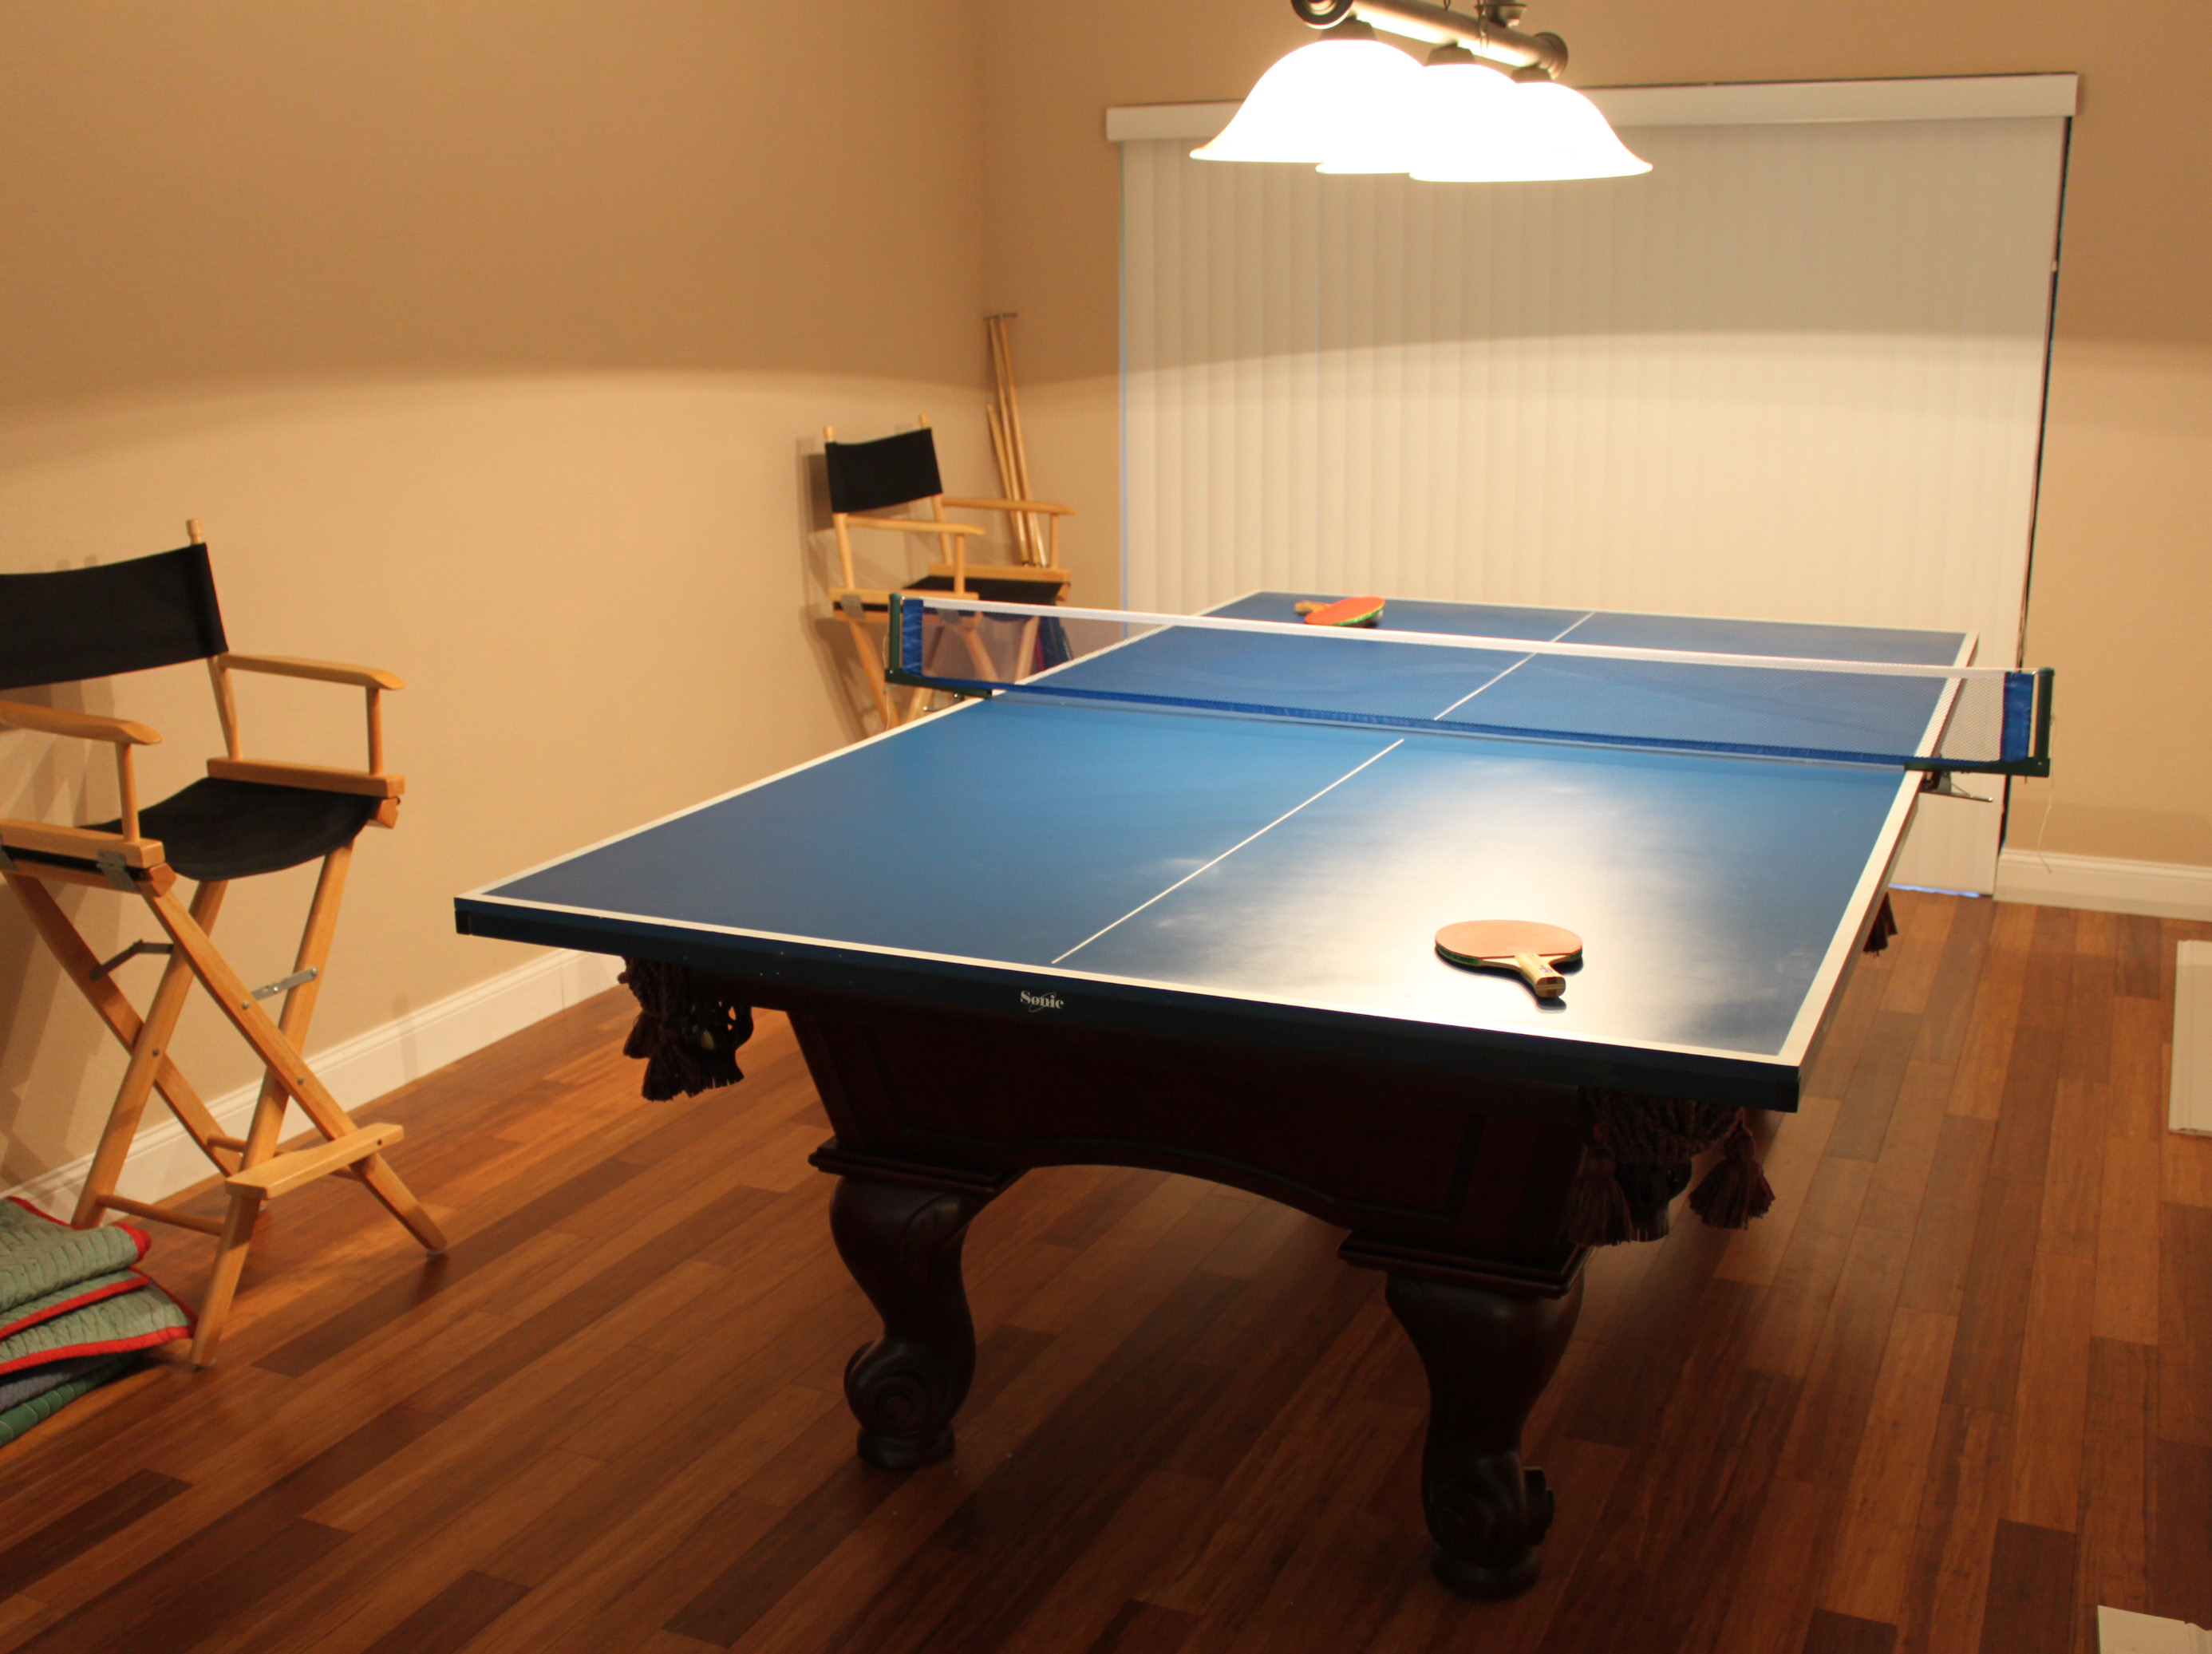 Wood ping pong table how much does a ping pong table cost - How much does a ping pong table cost ...